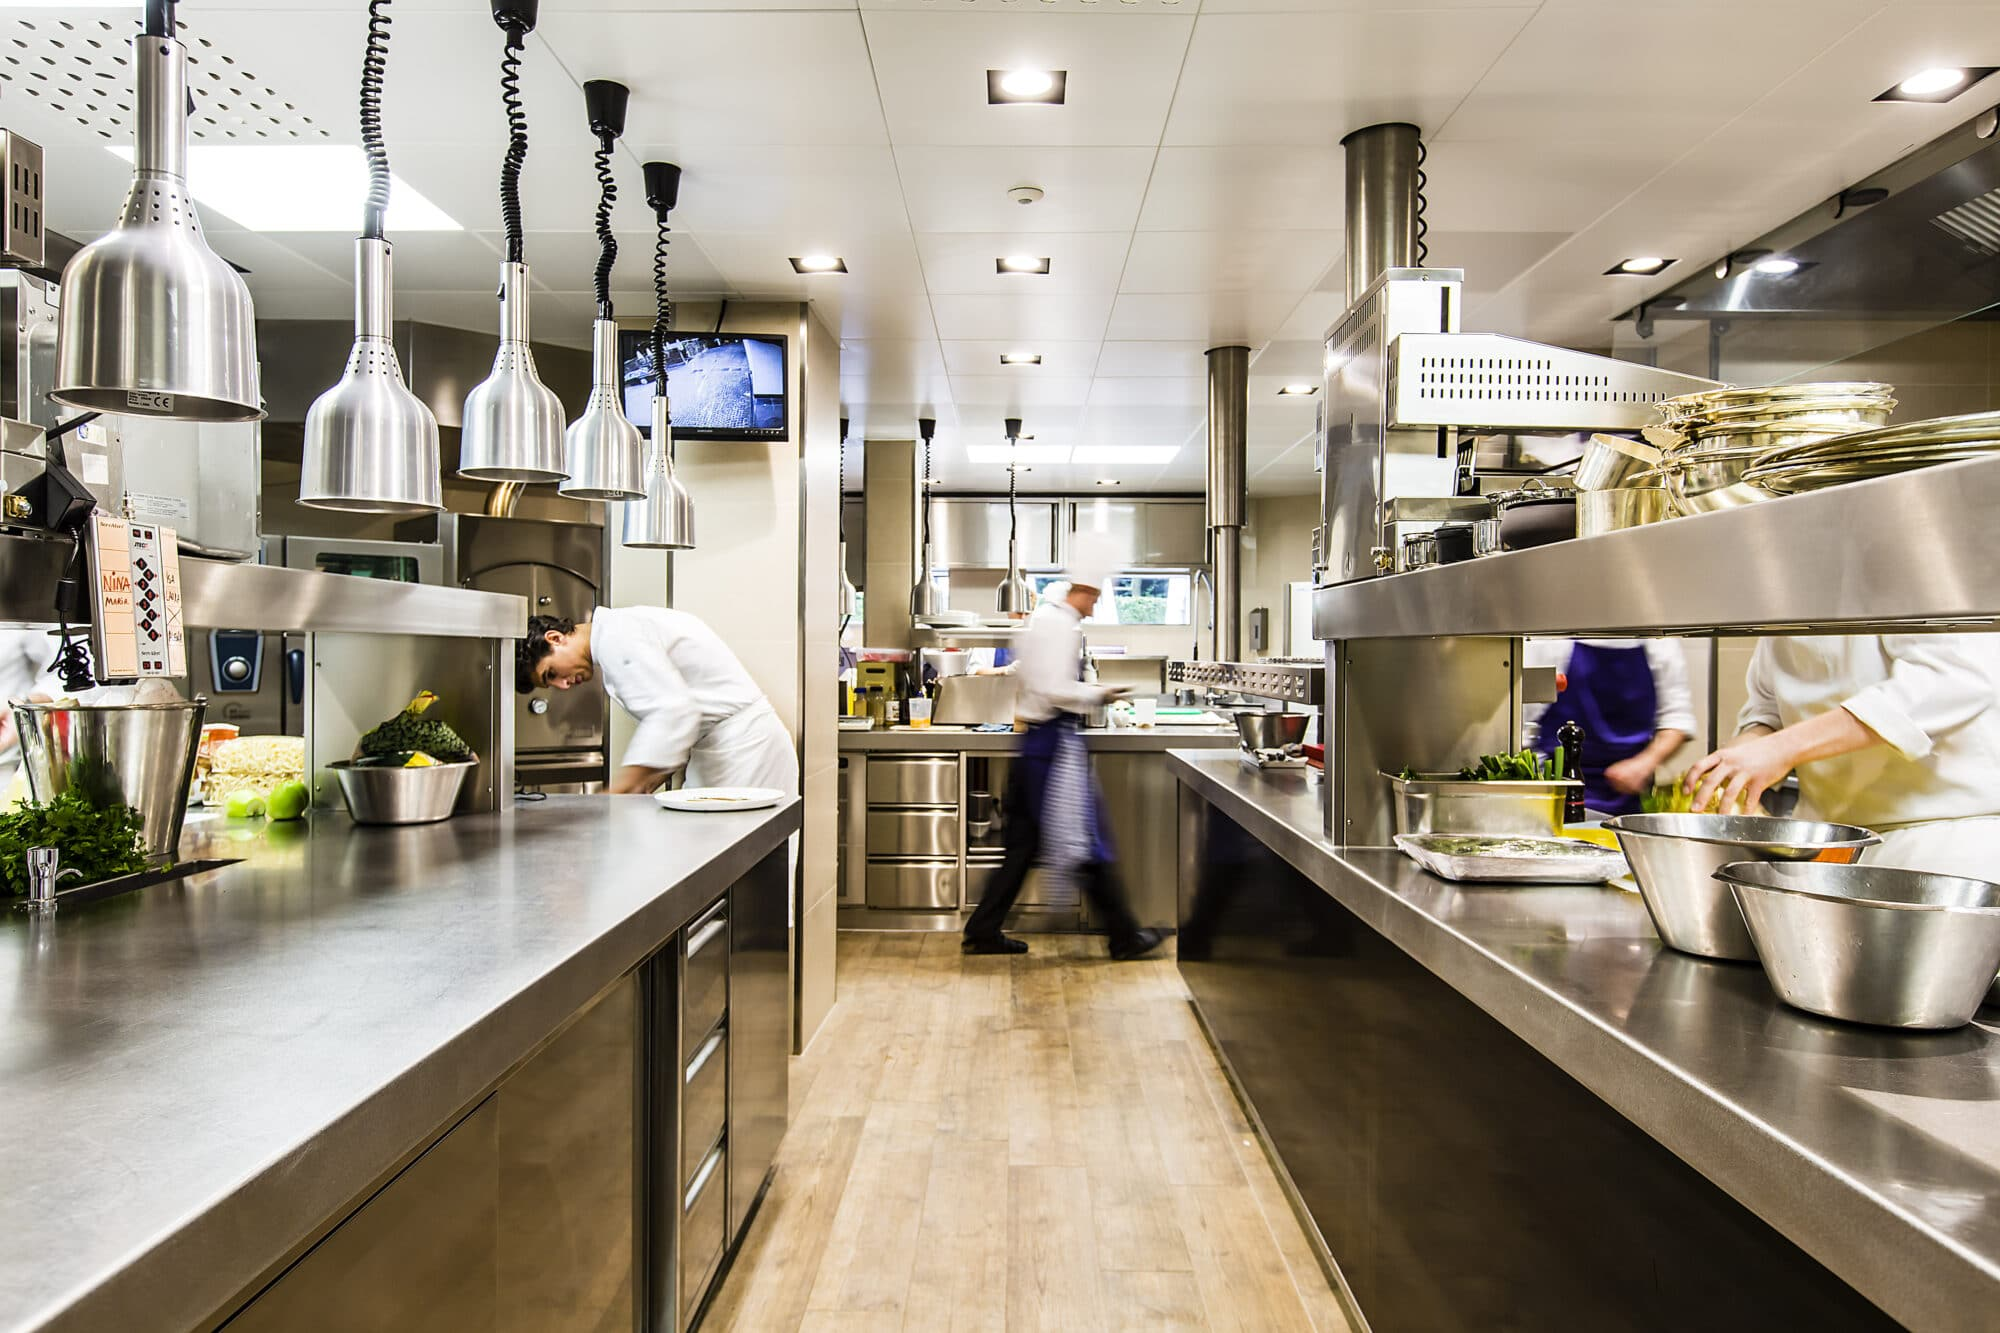 Cleaning in food environments